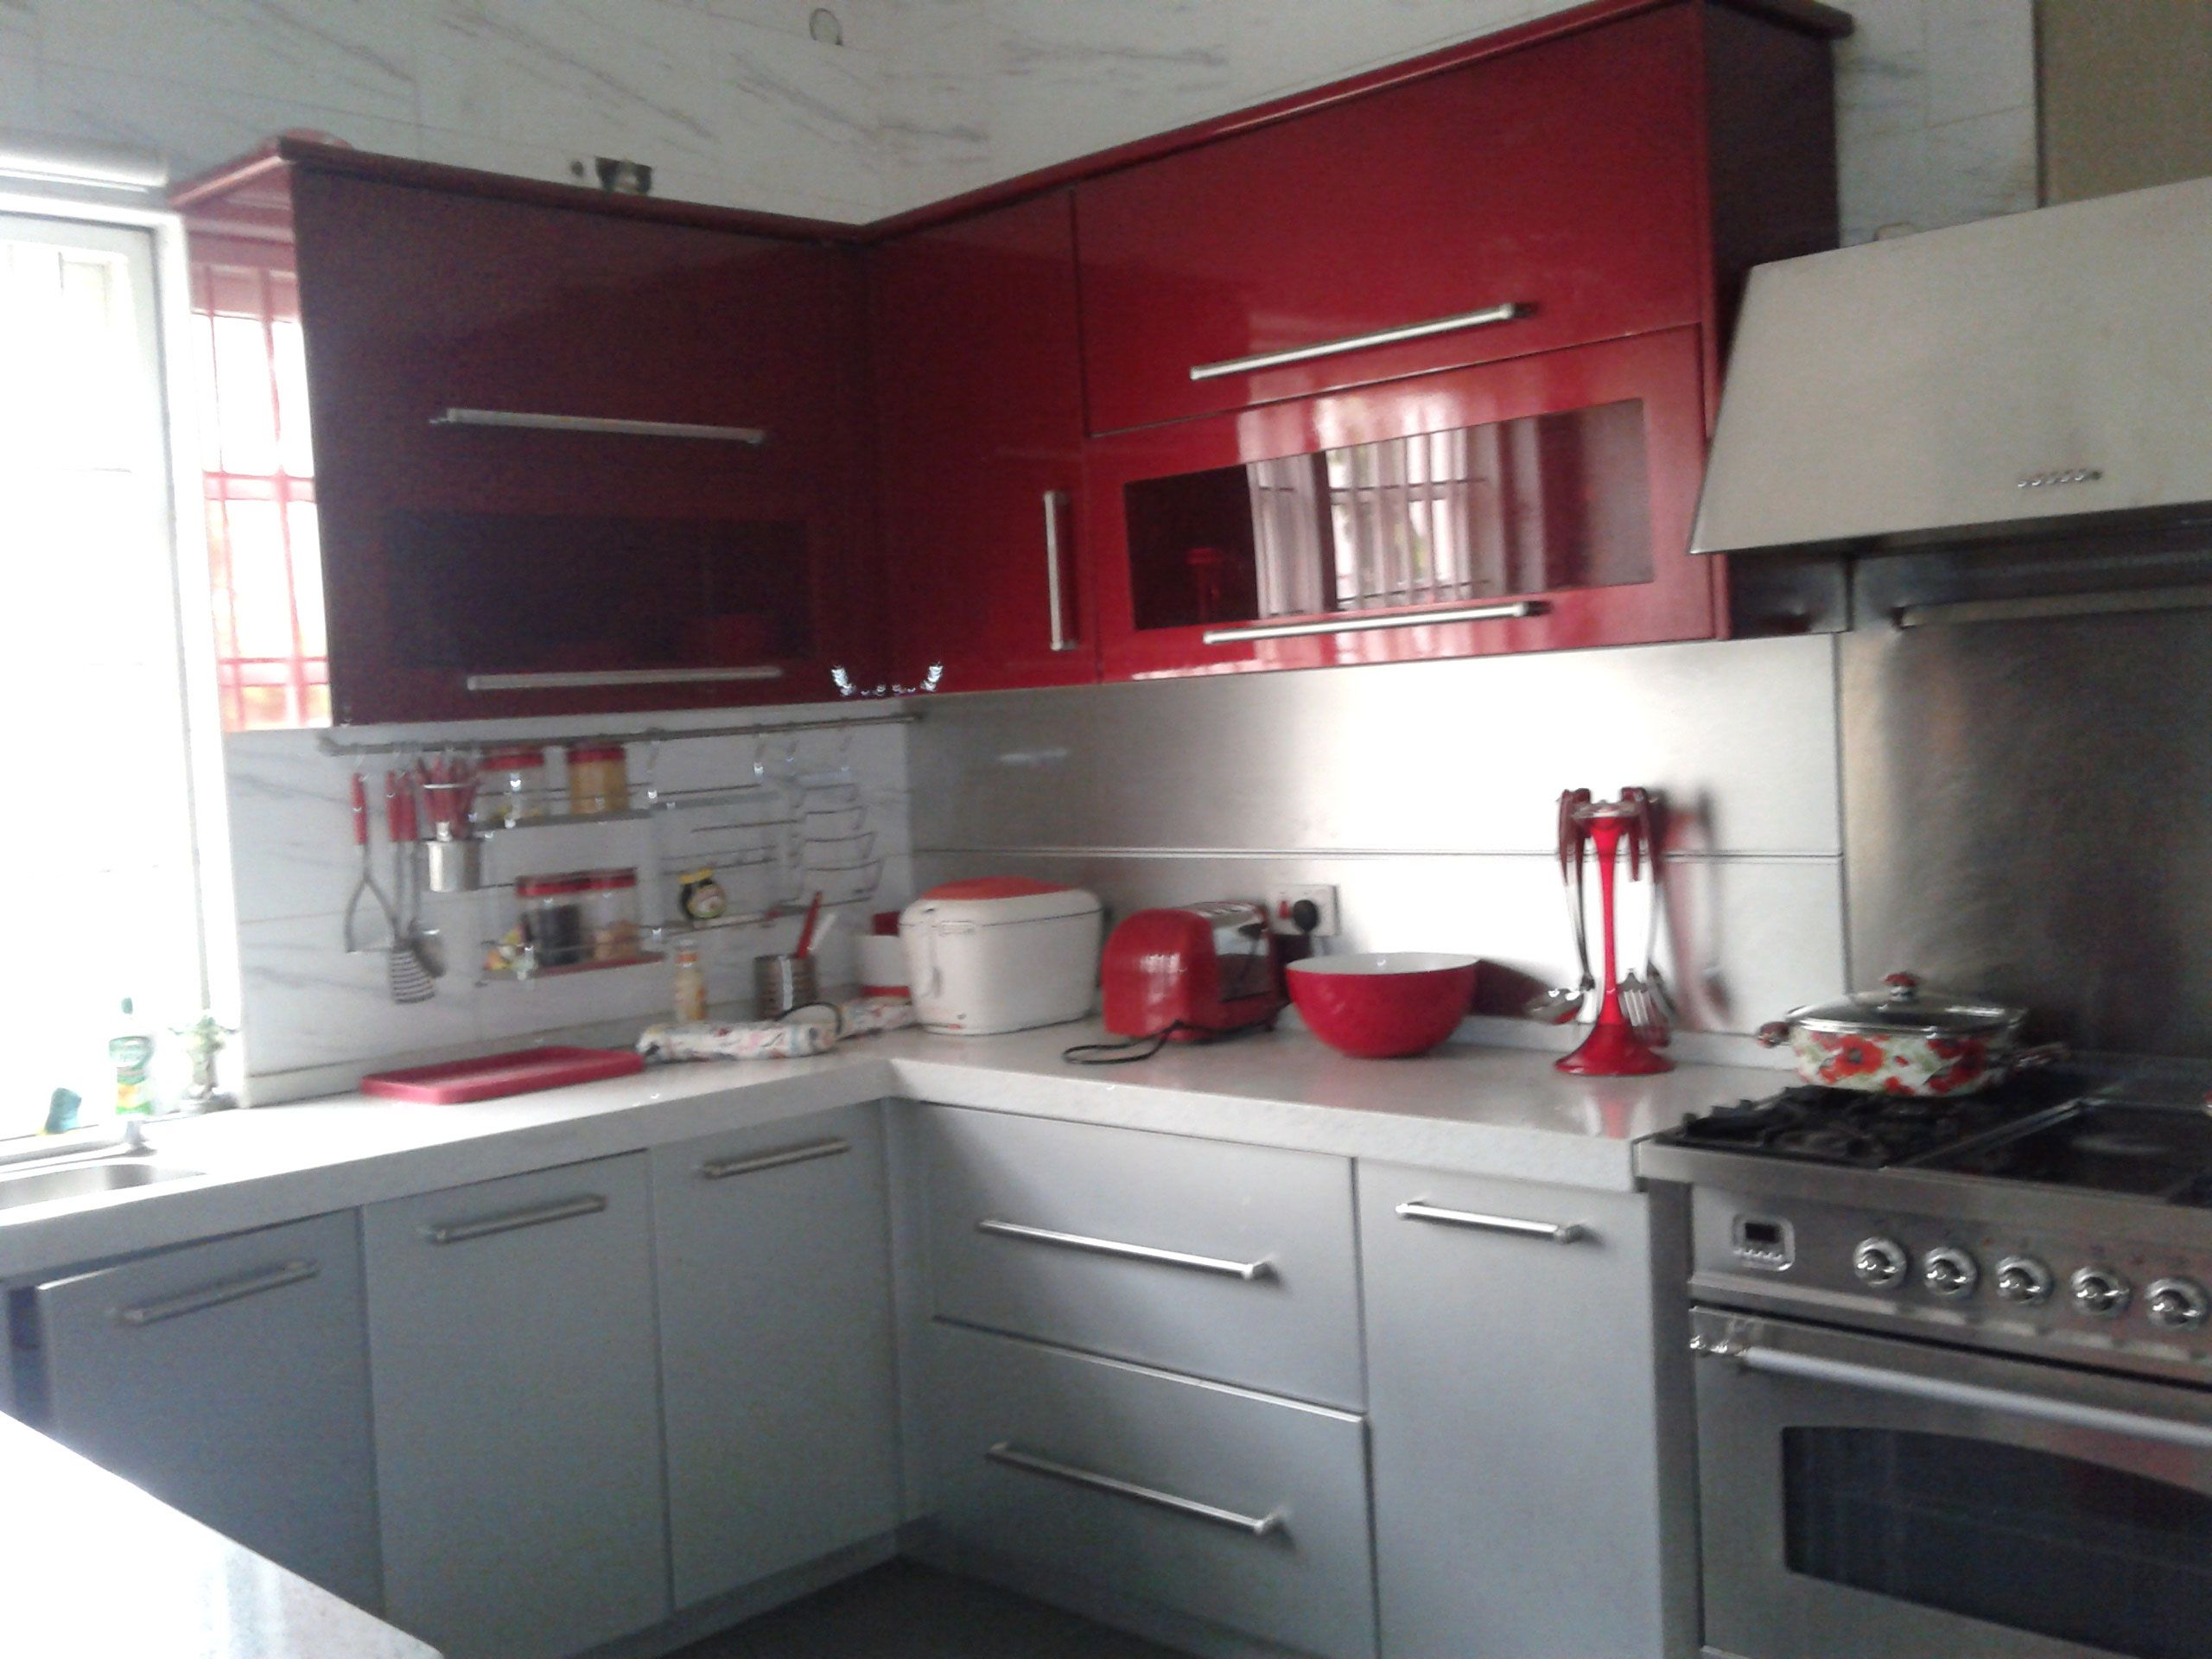 Masters Kitchen Base Cabinets Oppein Kitchen Cabinet For Abuja Project Finish Project